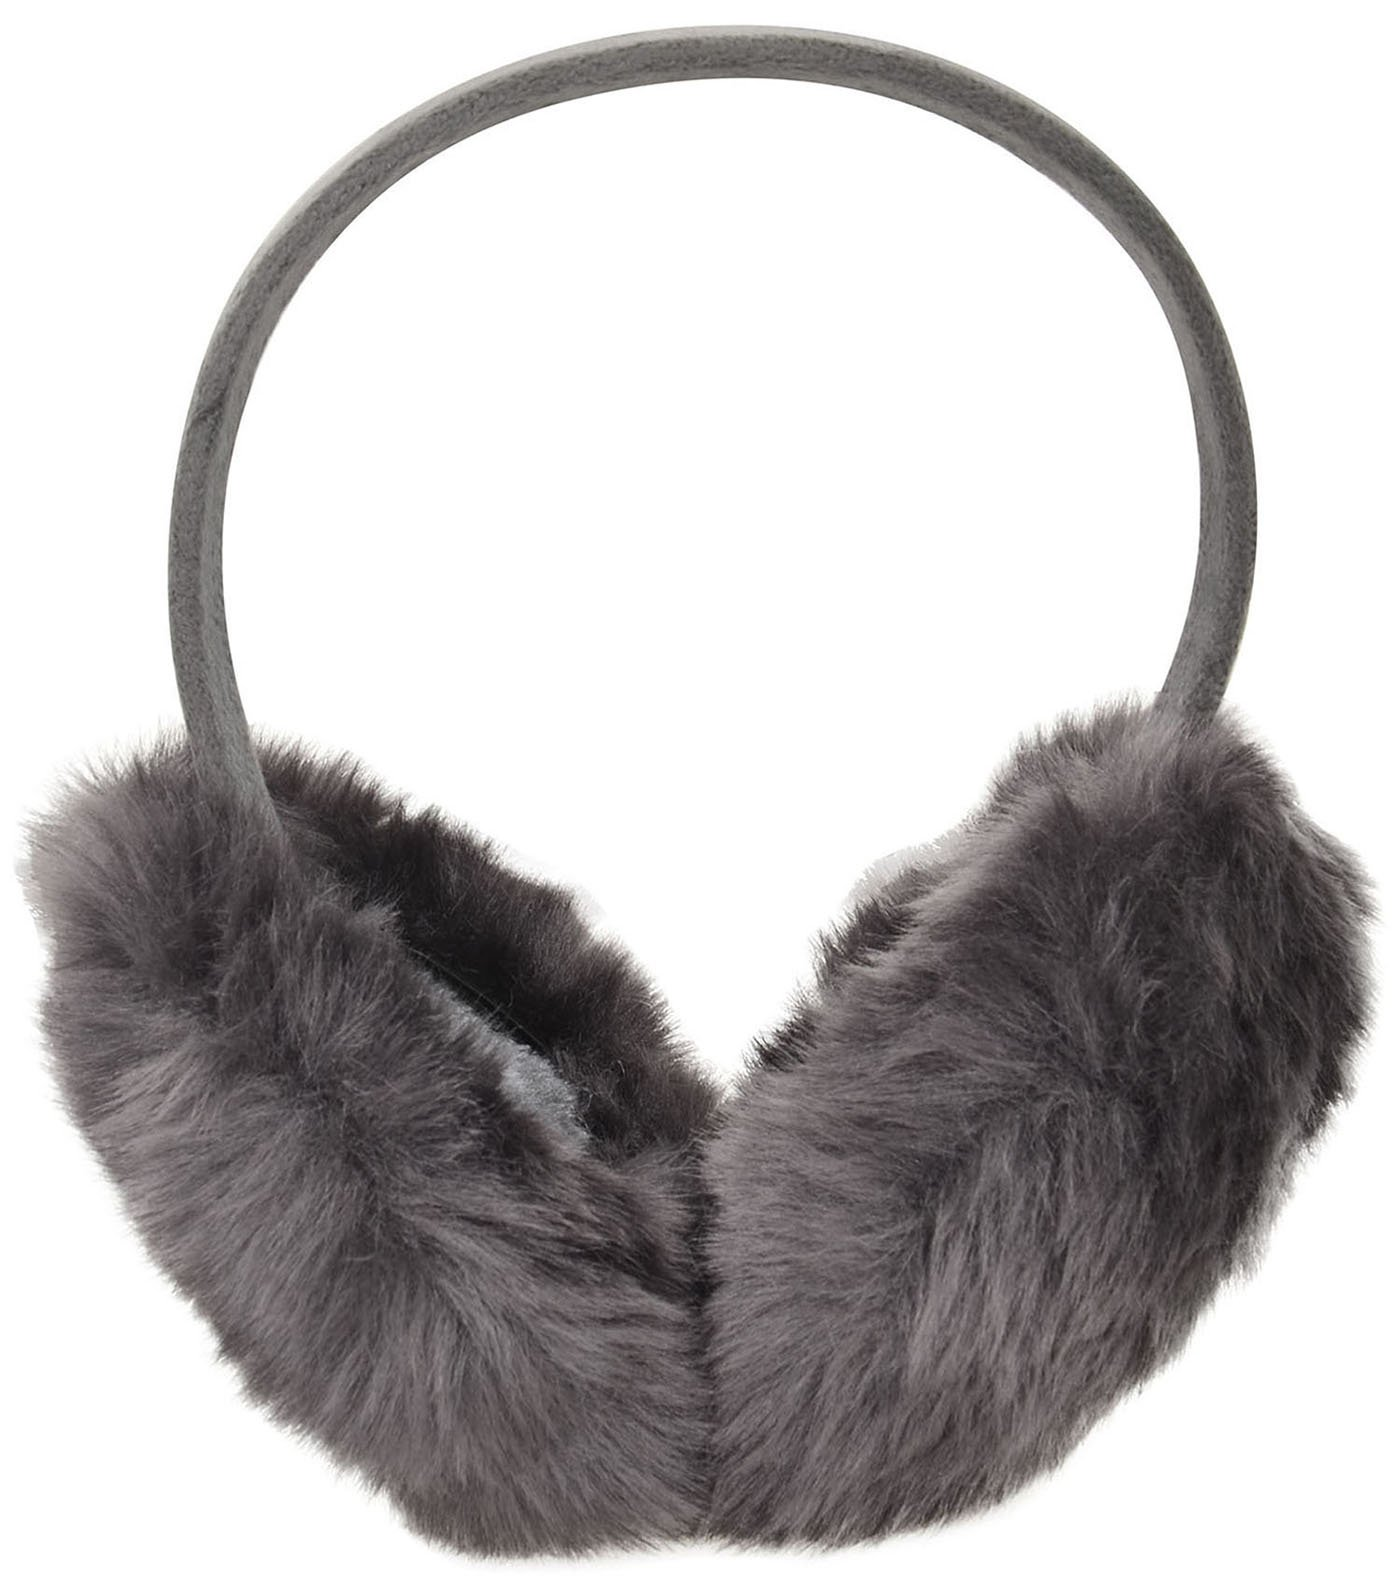 Livingston Simple Classic Faux Furry Warm Winter Outdoors Ear Warmer, Dark Grey